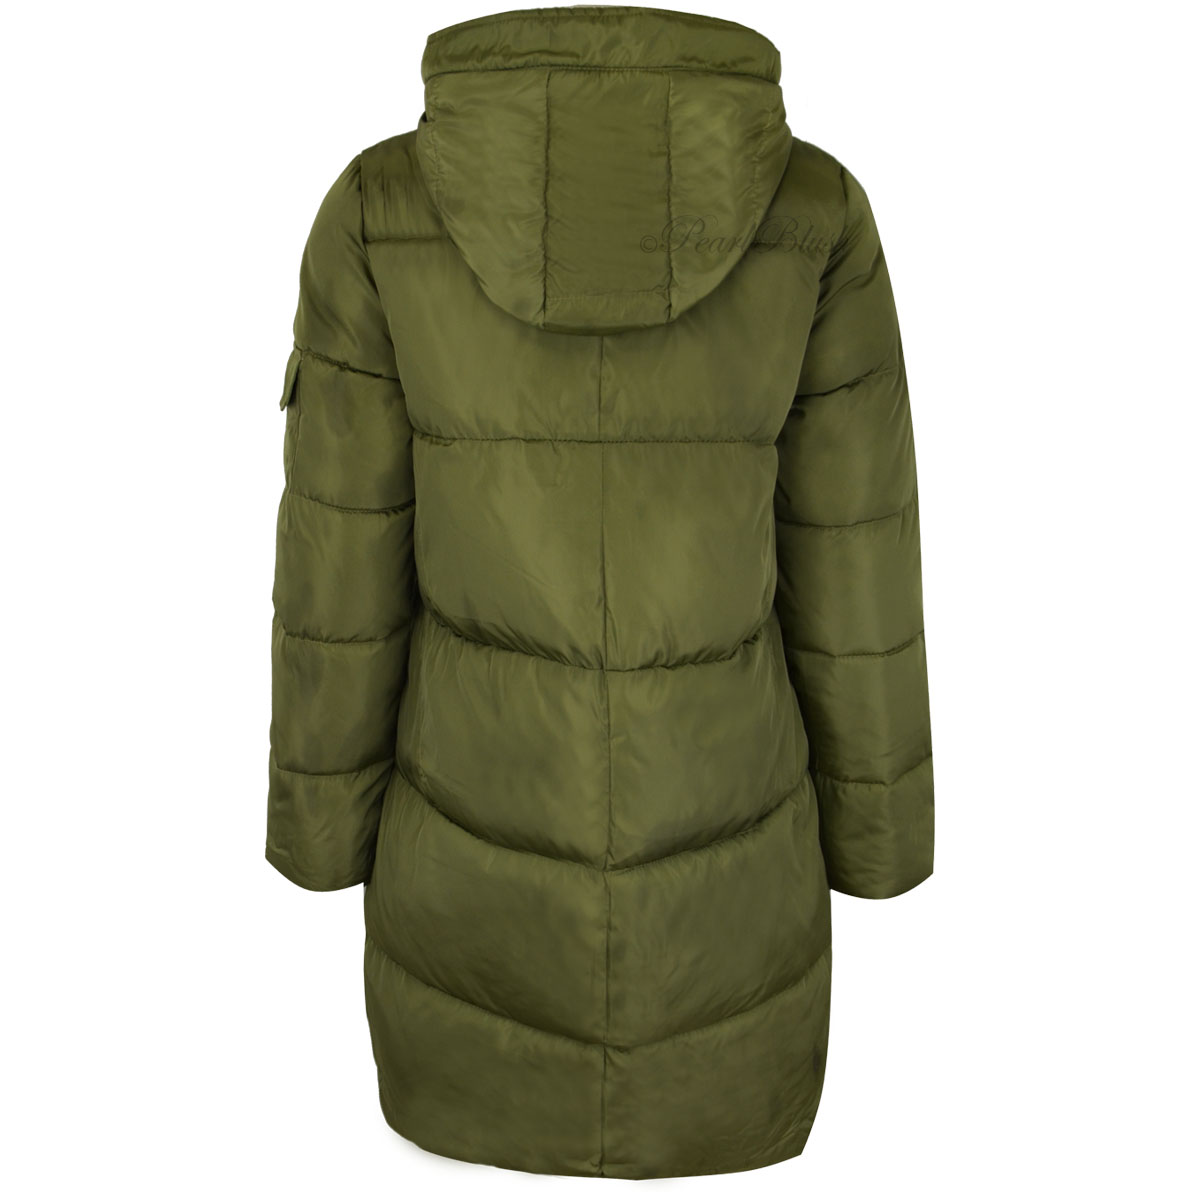 Men's Winter Padding Jackets